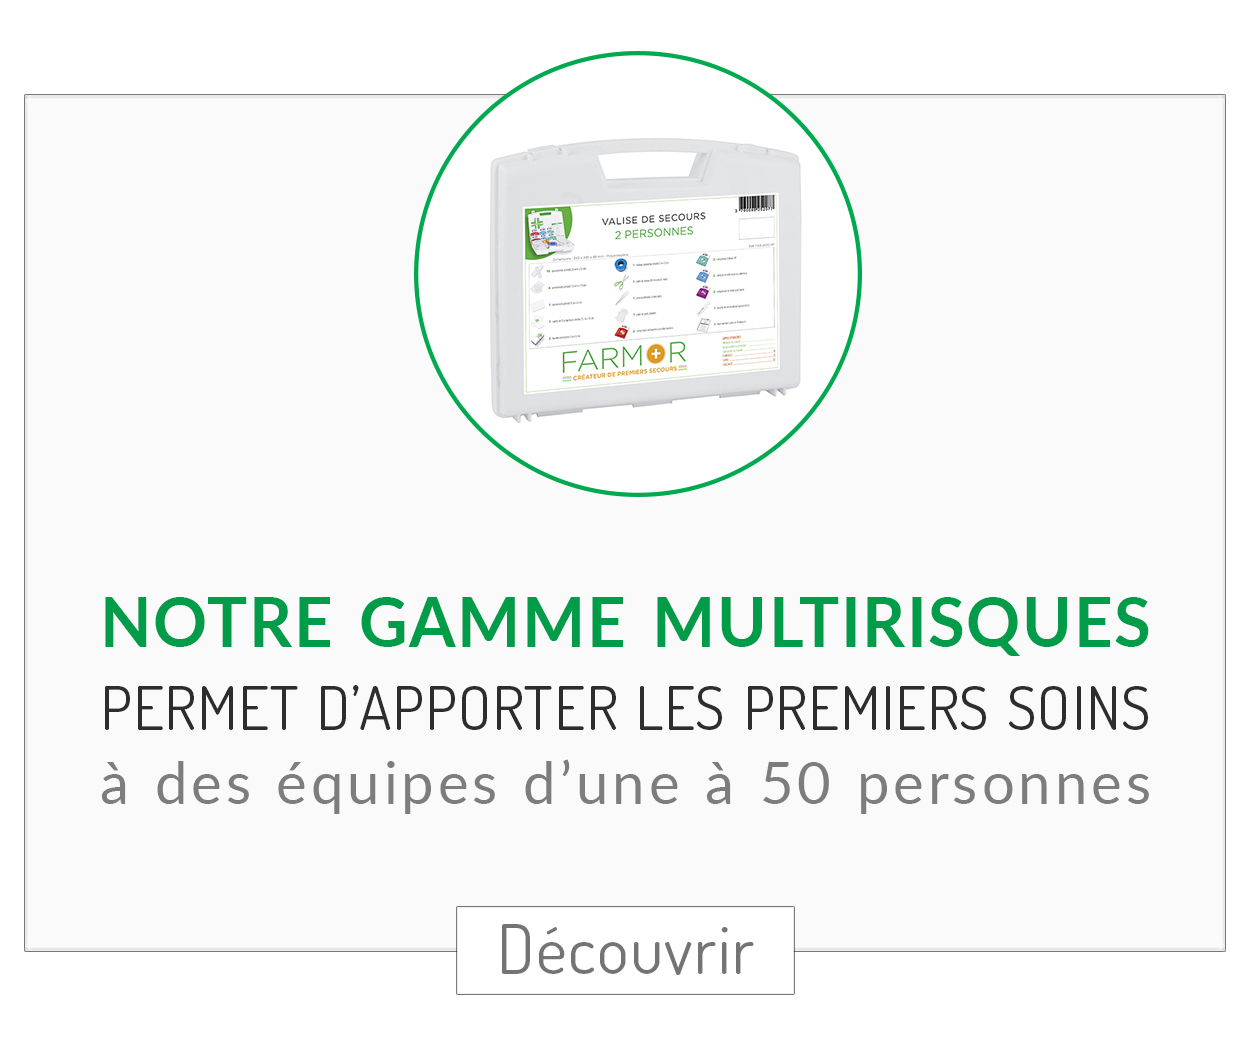 Gamme multirisques